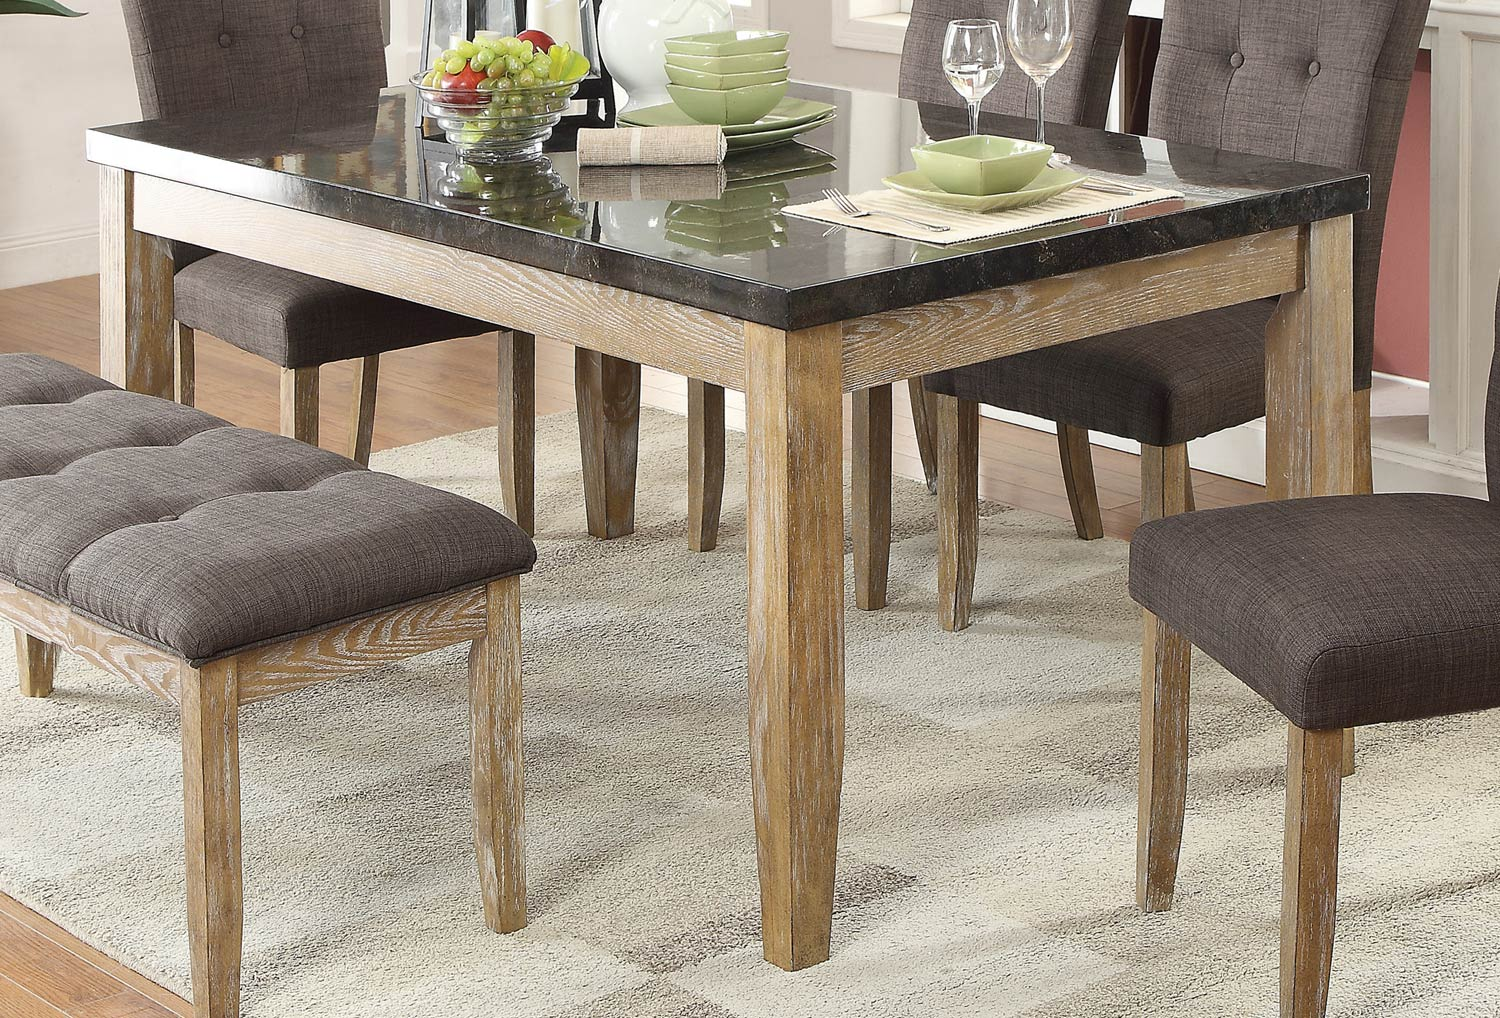 Homelegance Huron Dining Table - Faux Marble Top - Weathered Wood